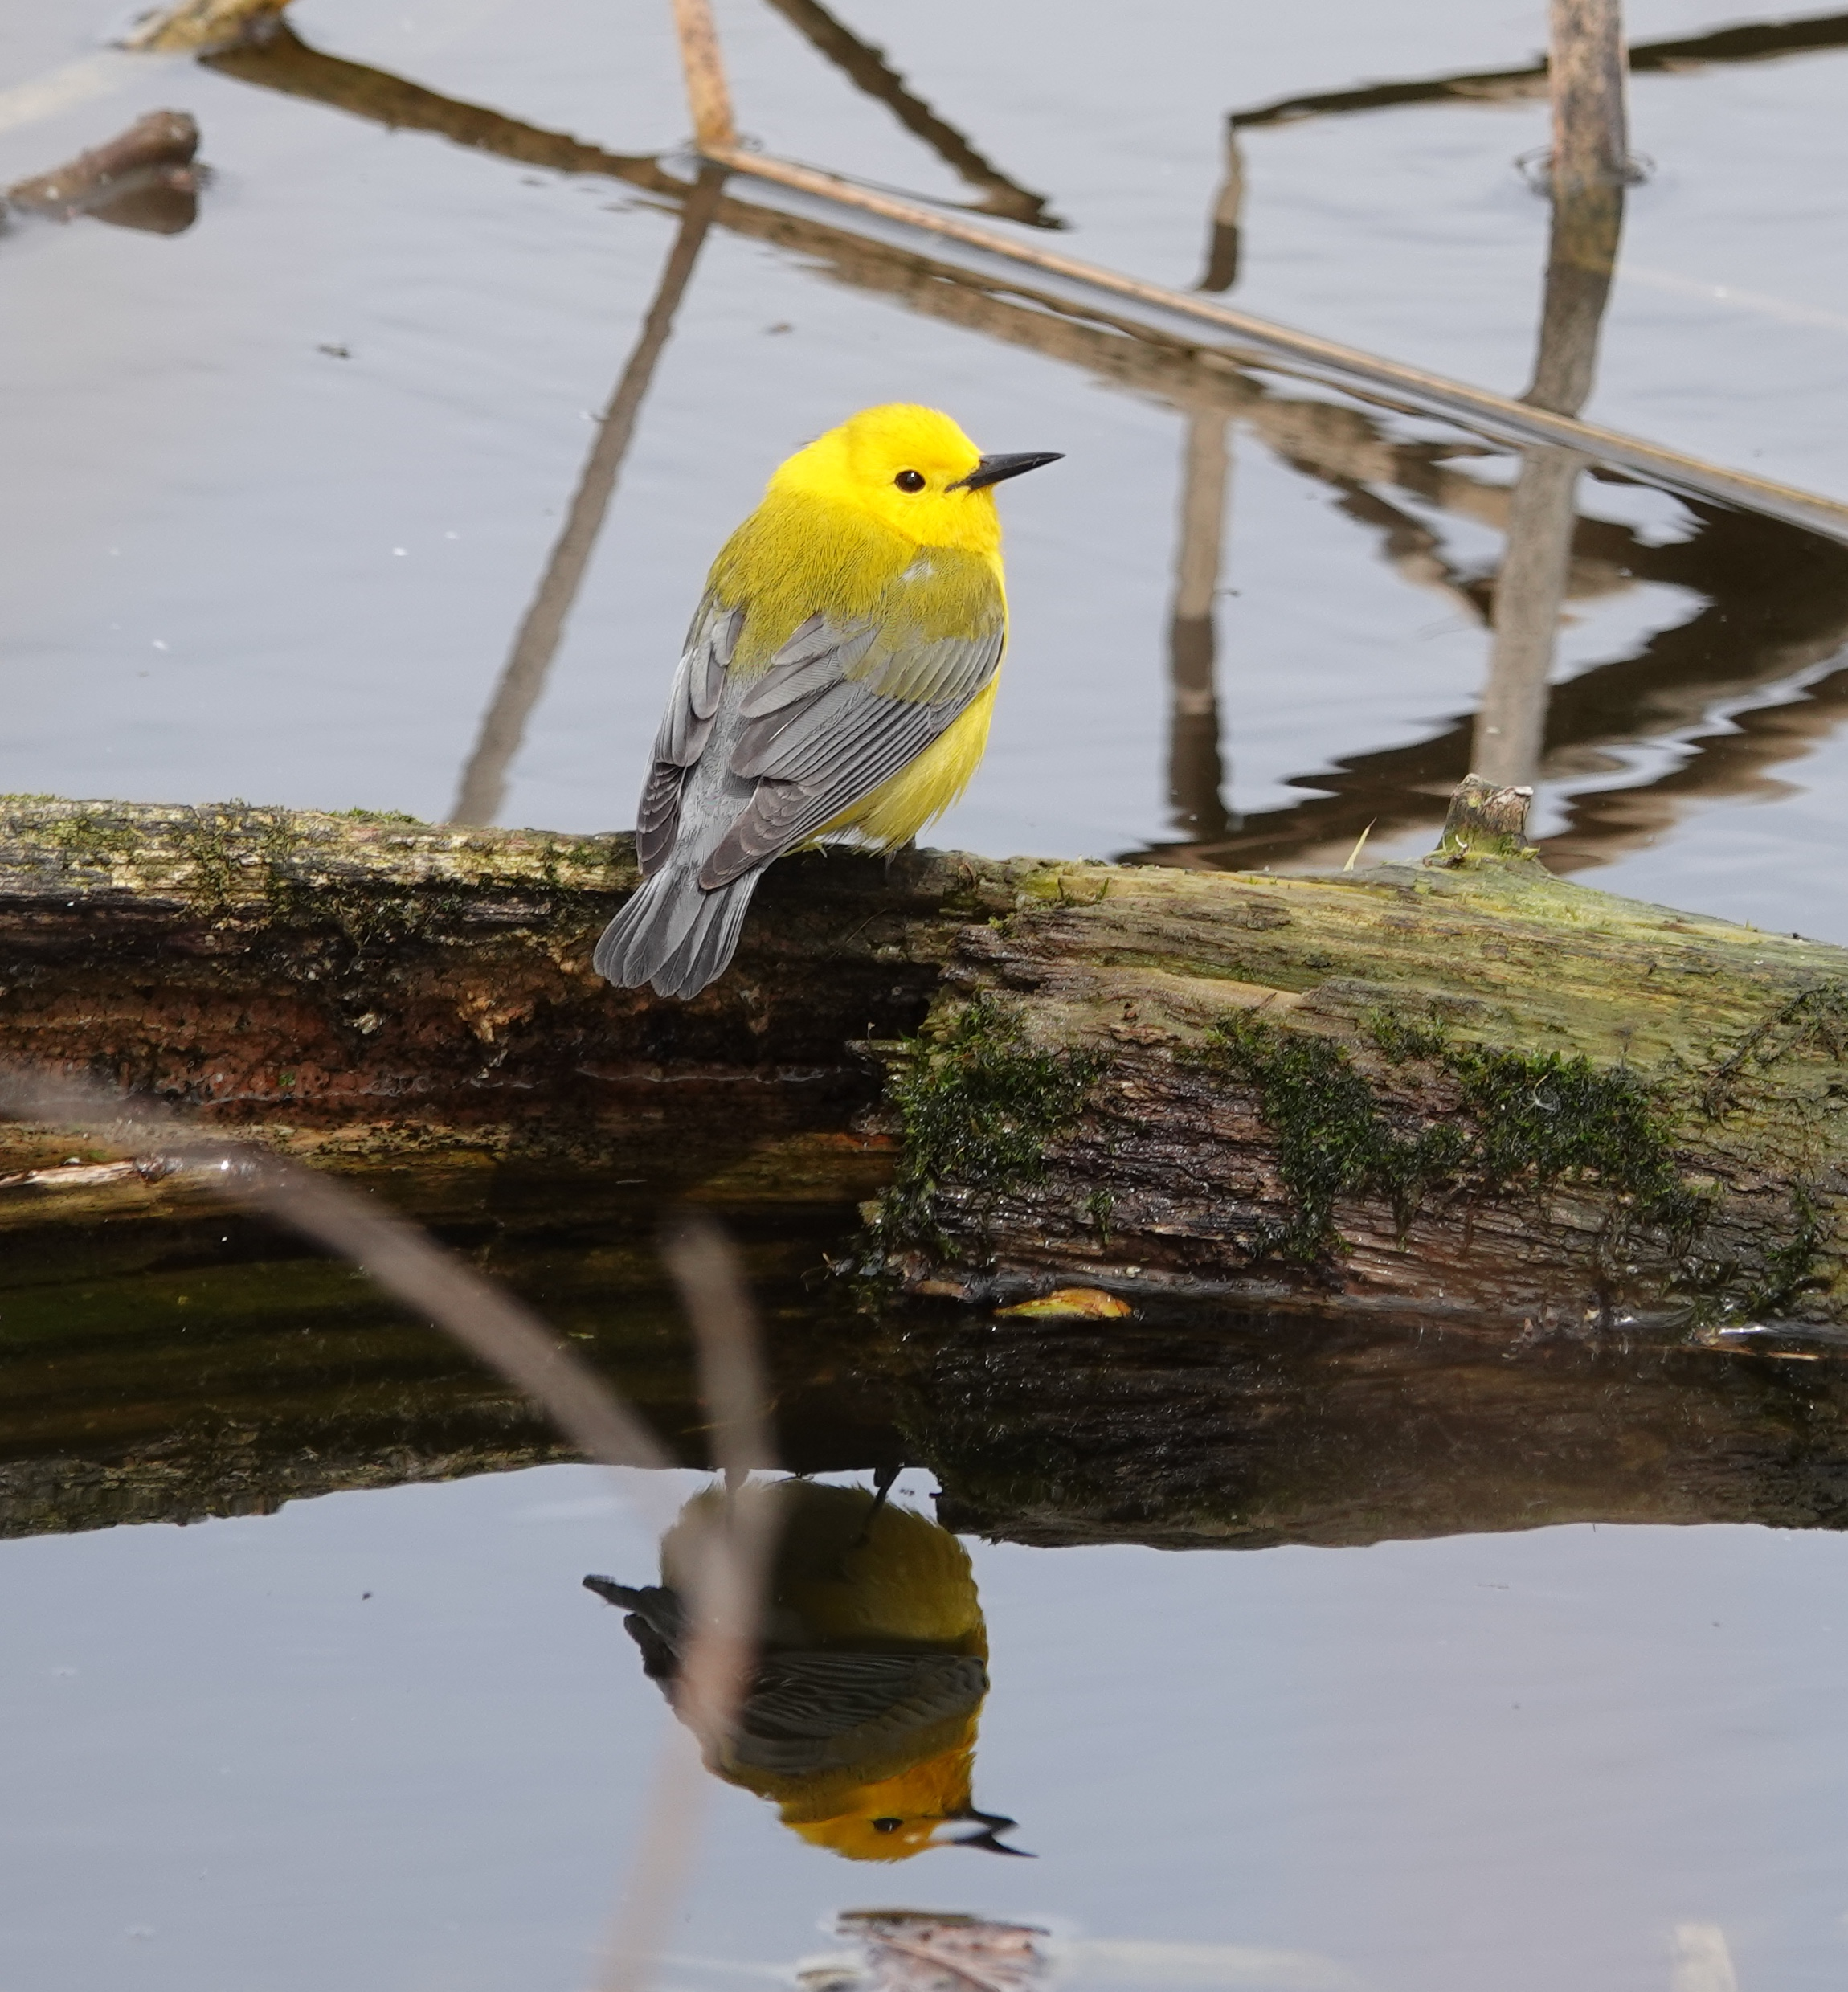 A prothonotary warbler looking all prothonotary.